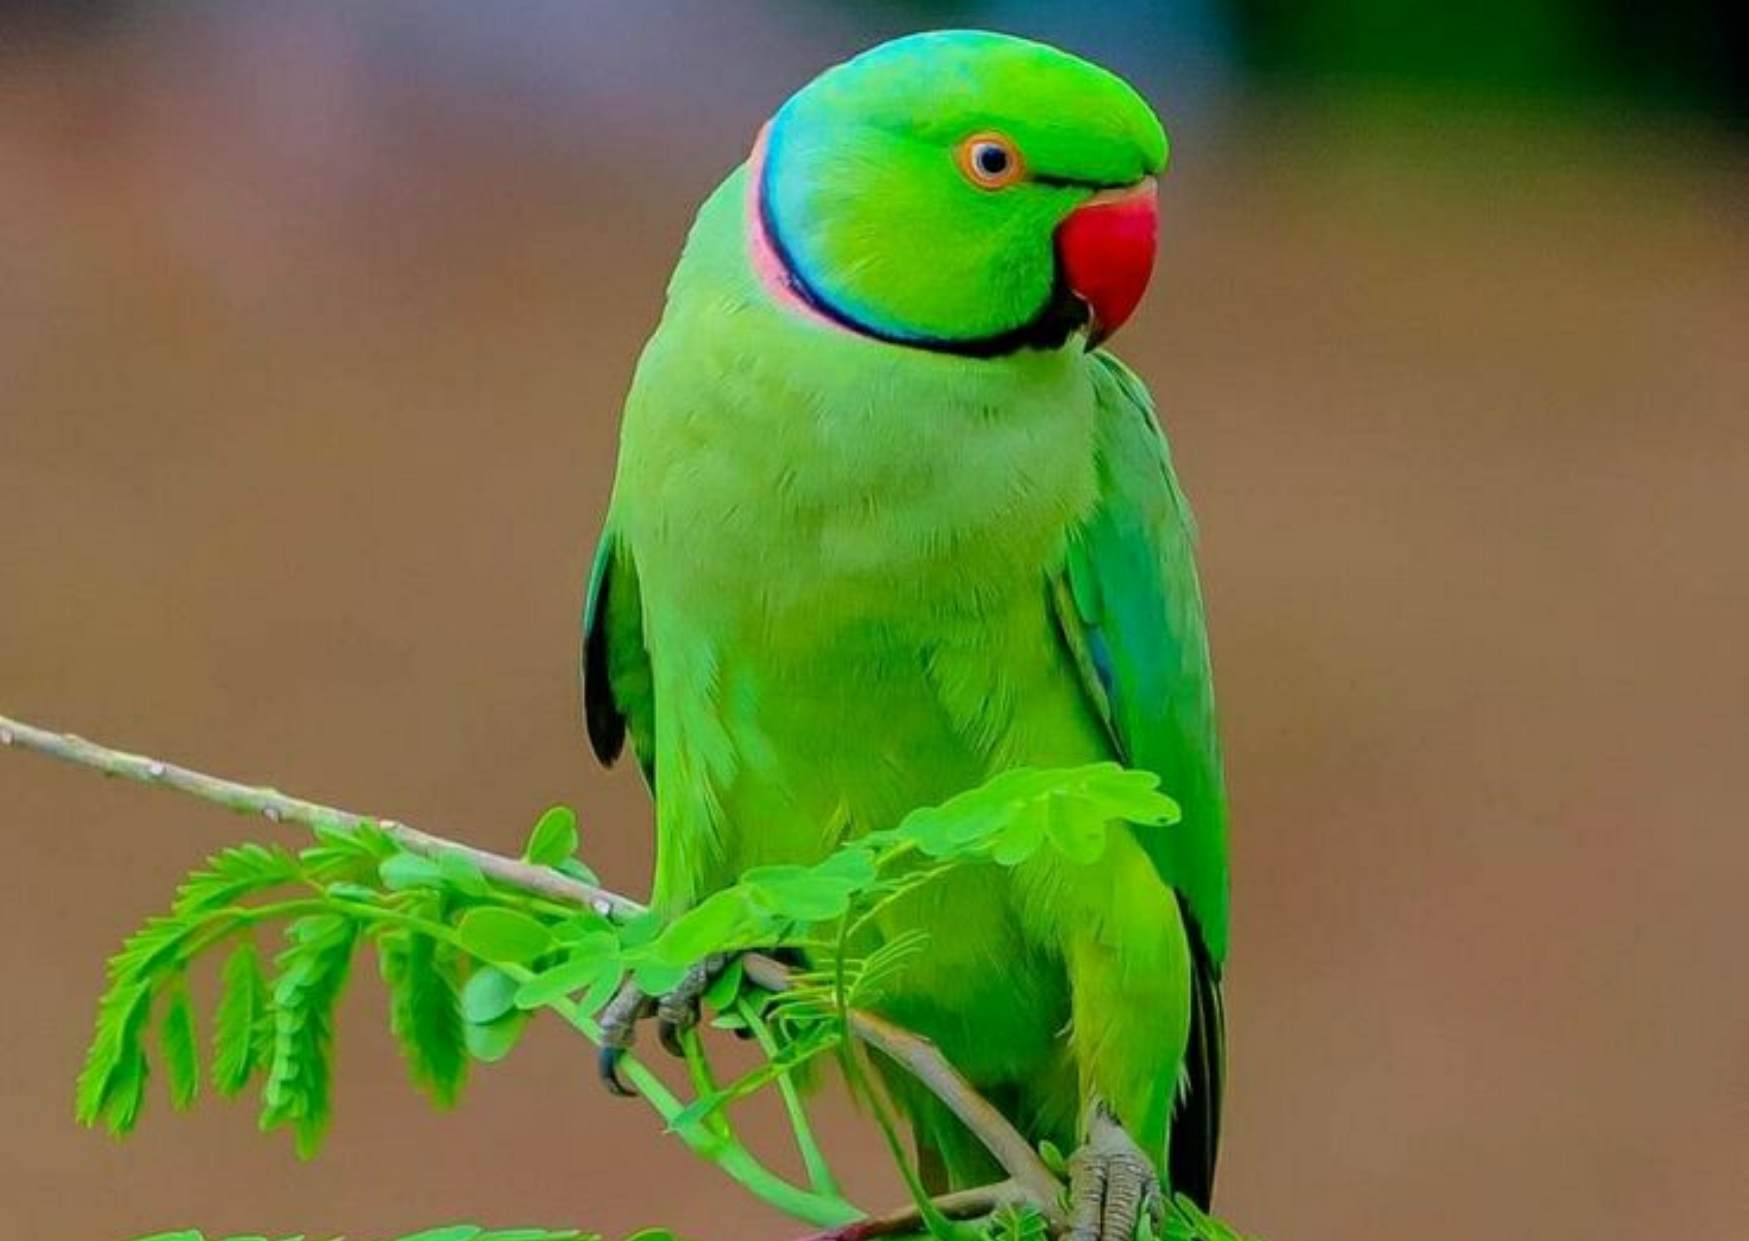 About Parrot in Hindi, Colour of Parrot in Hindi, Importance of Parrot in Hindi, Food of Parrot, Information of Parrot in Hindi